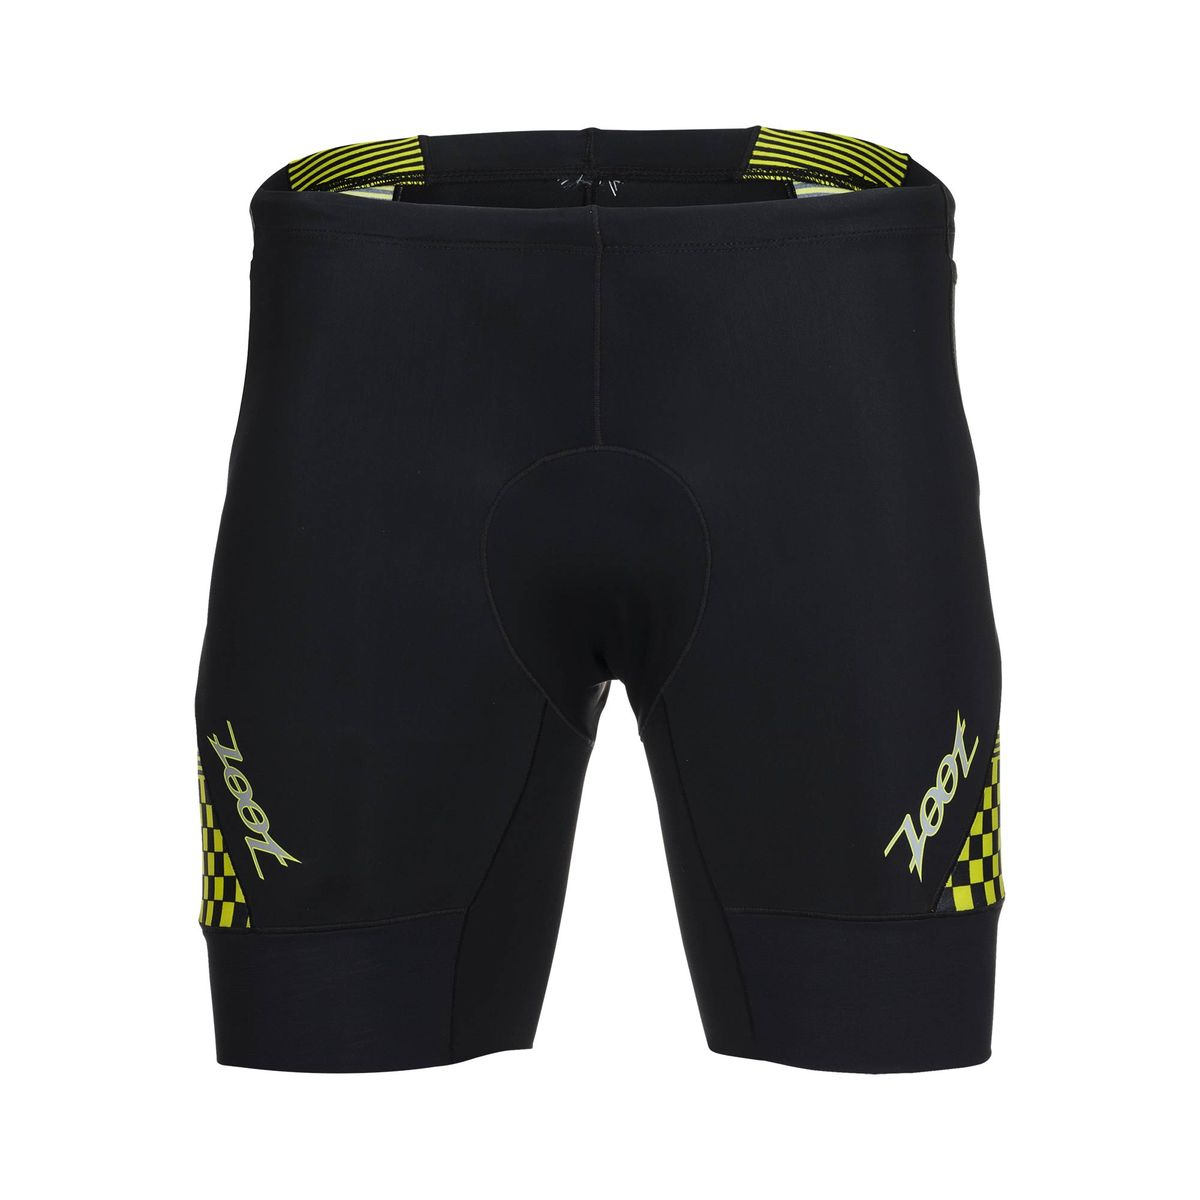 "M PERFORMANCE TRI 7"" SHORT 2017 Tri Short"